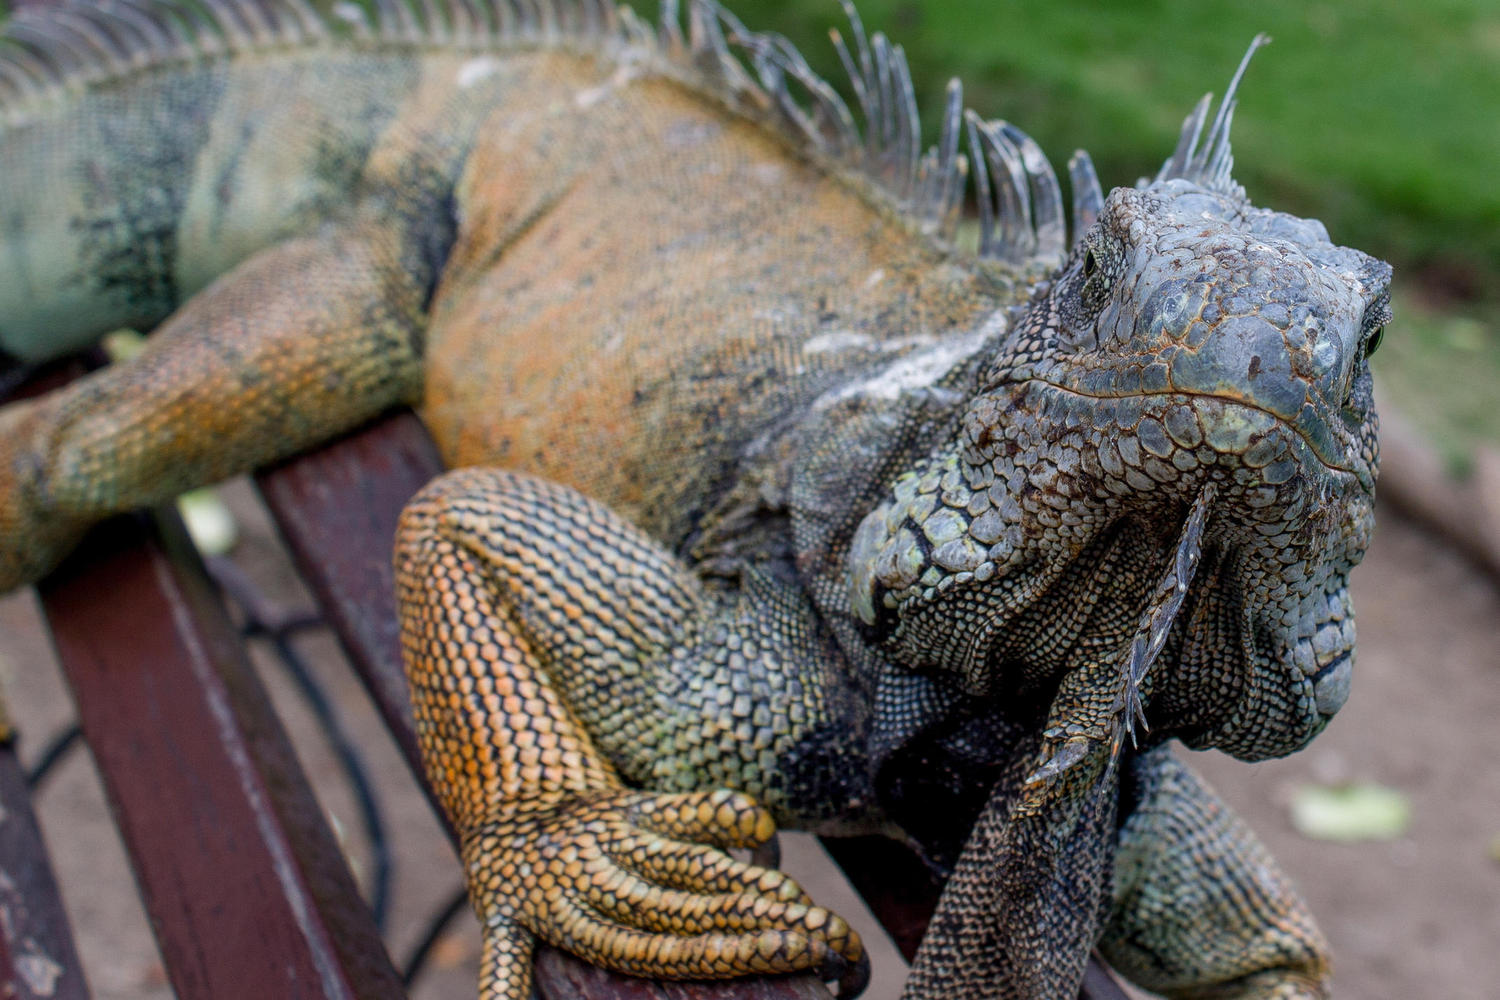 The Bolivar park in Guayaquil is home to a lot of iguanas